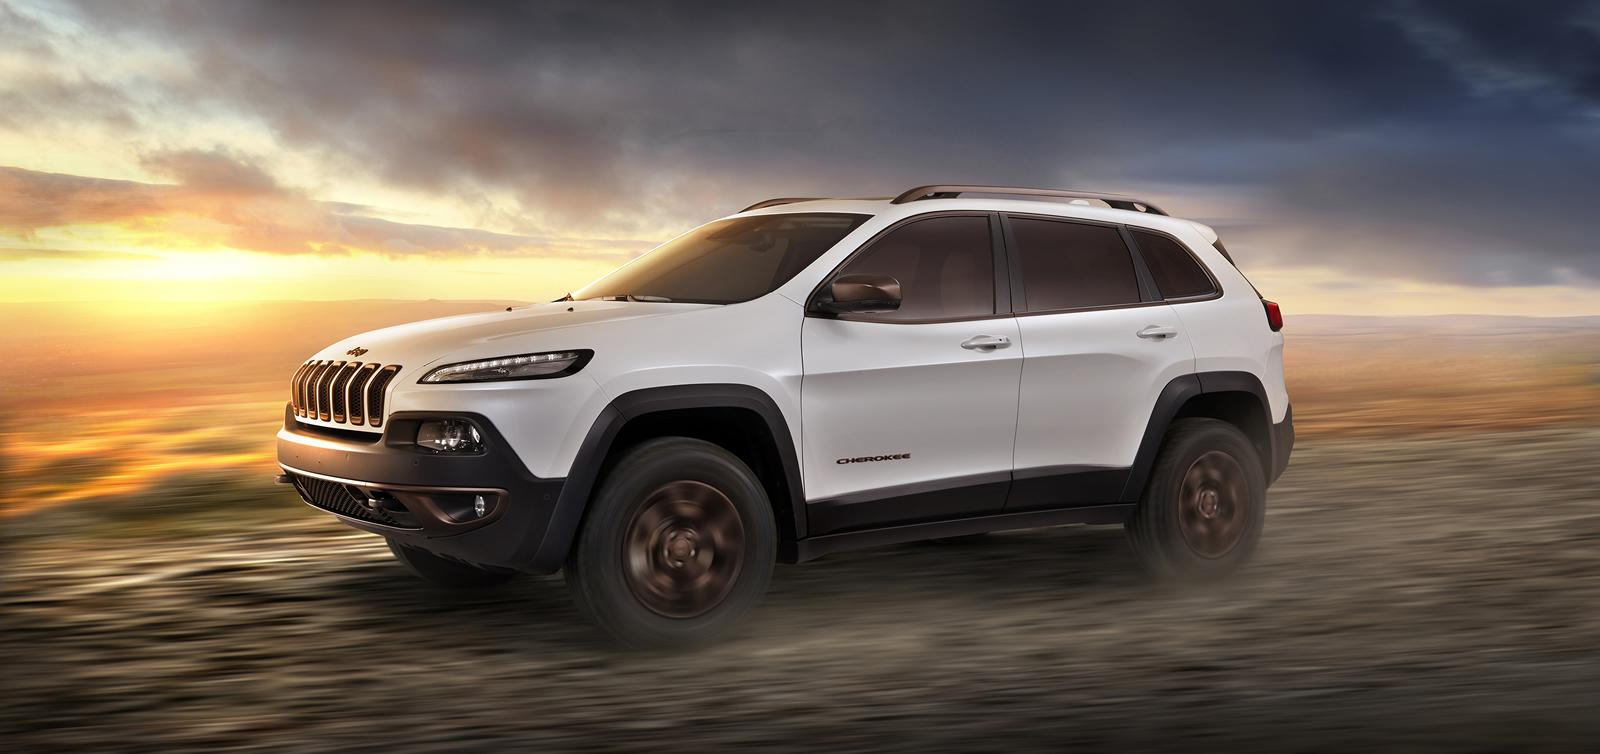 2019 Jeep Cherokee Sageland Concept photo - 5